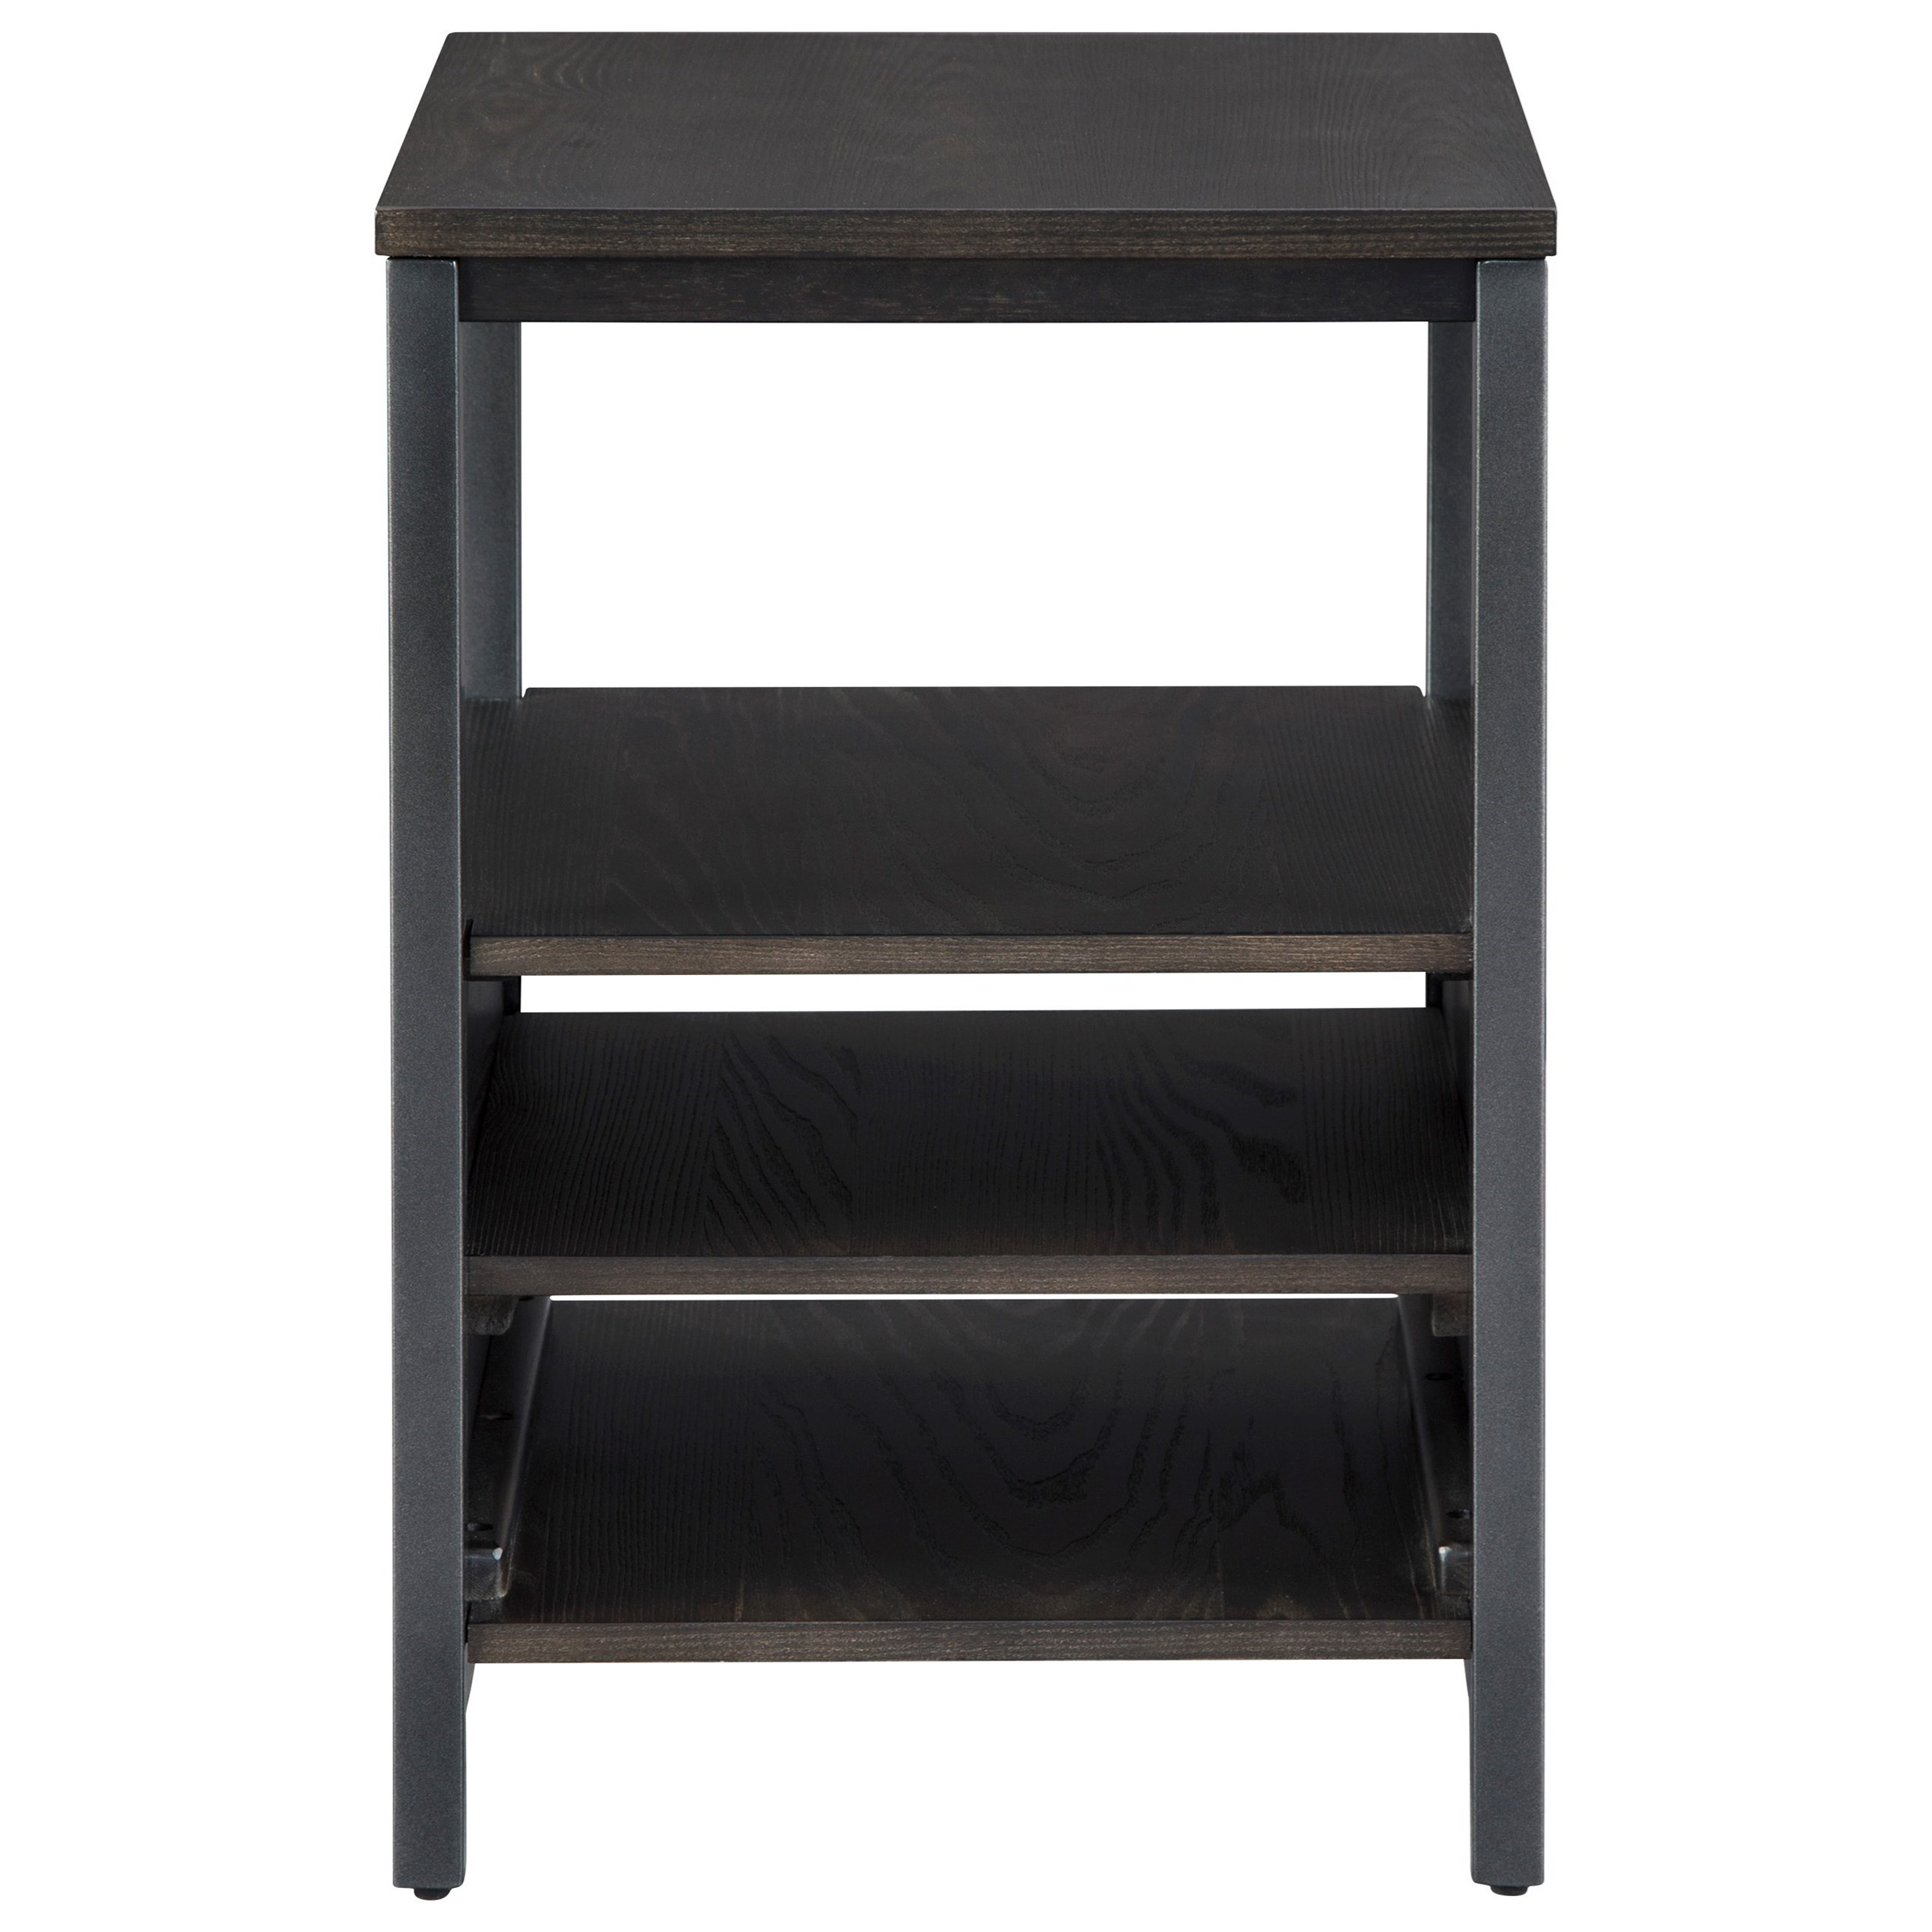 Airdon Chairside End Table by Signature Design by Ashley at Pilgrim Furniture City